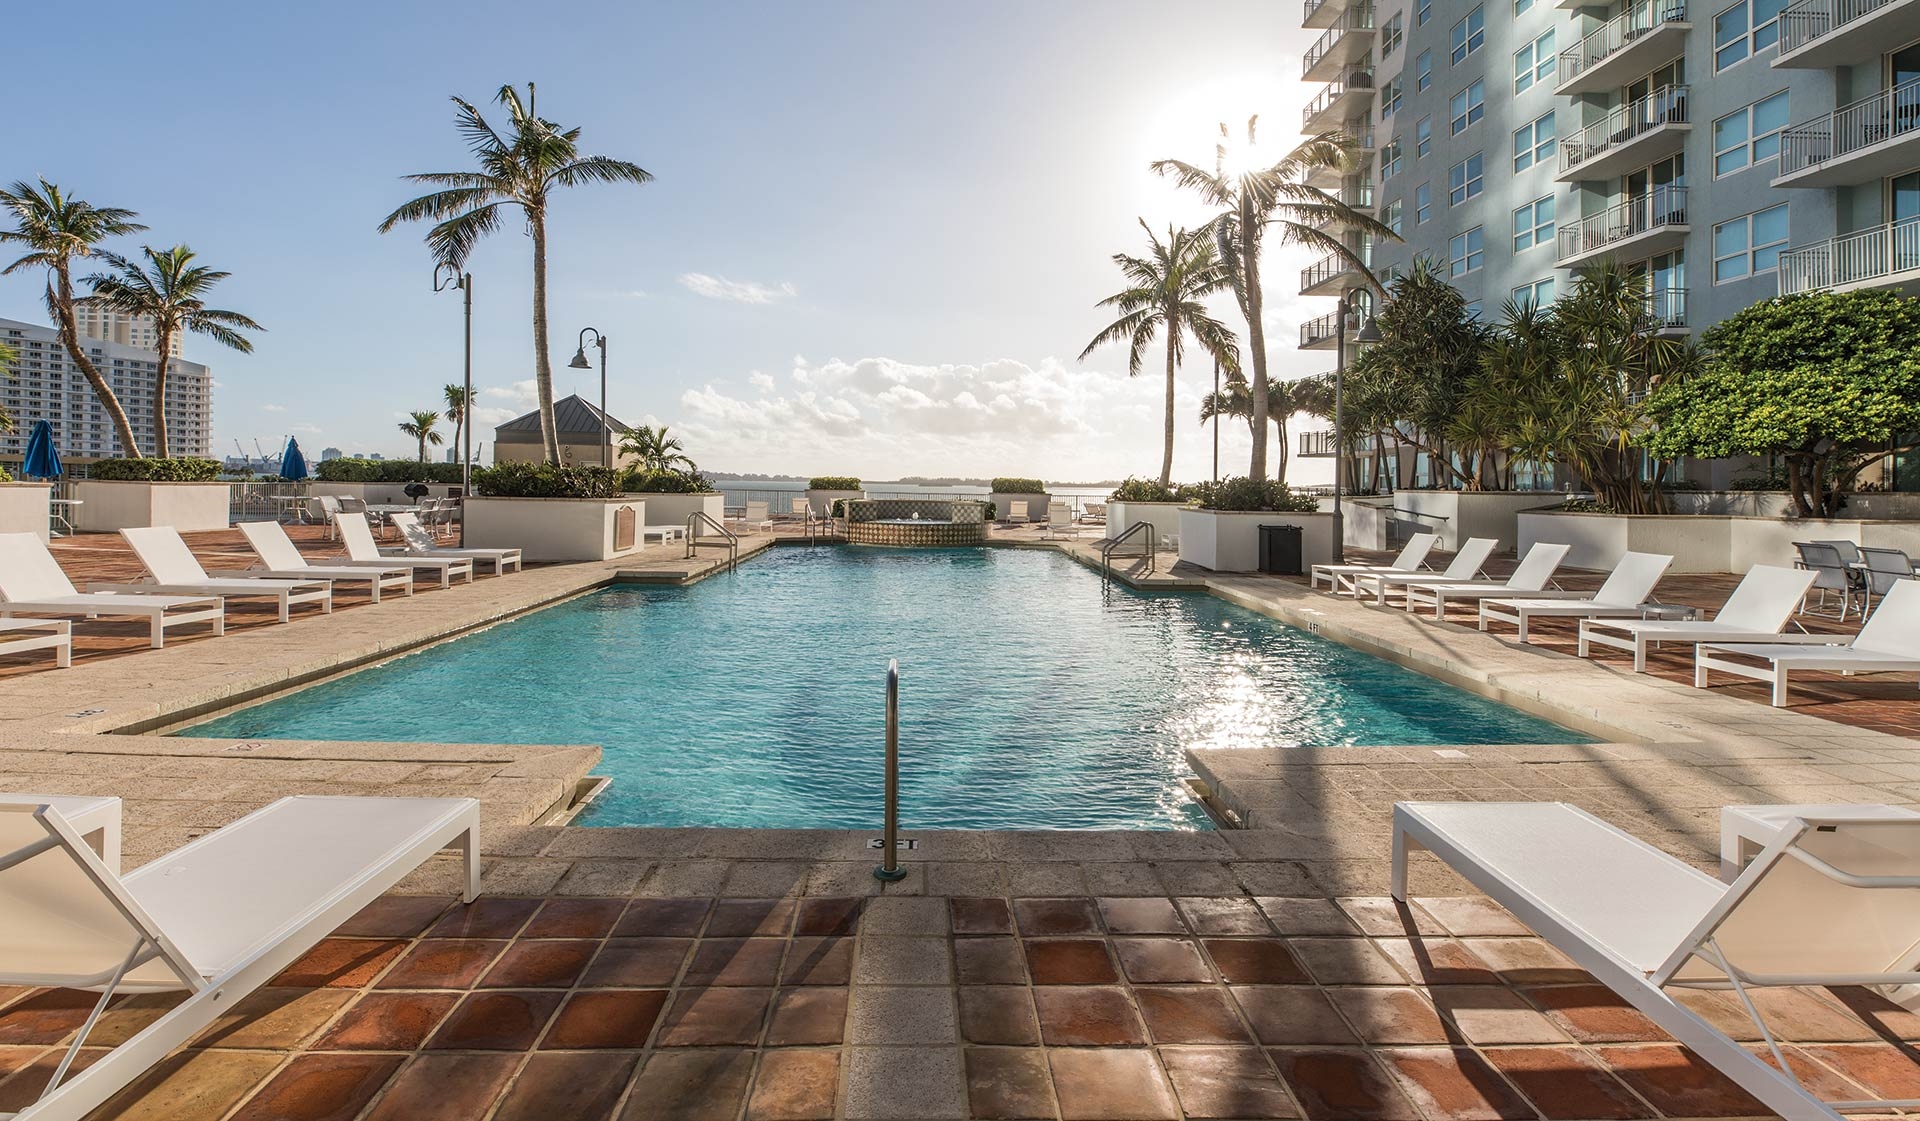 Yacht Club at Brickell Apartments in Miami, FL - Resort-style Pool